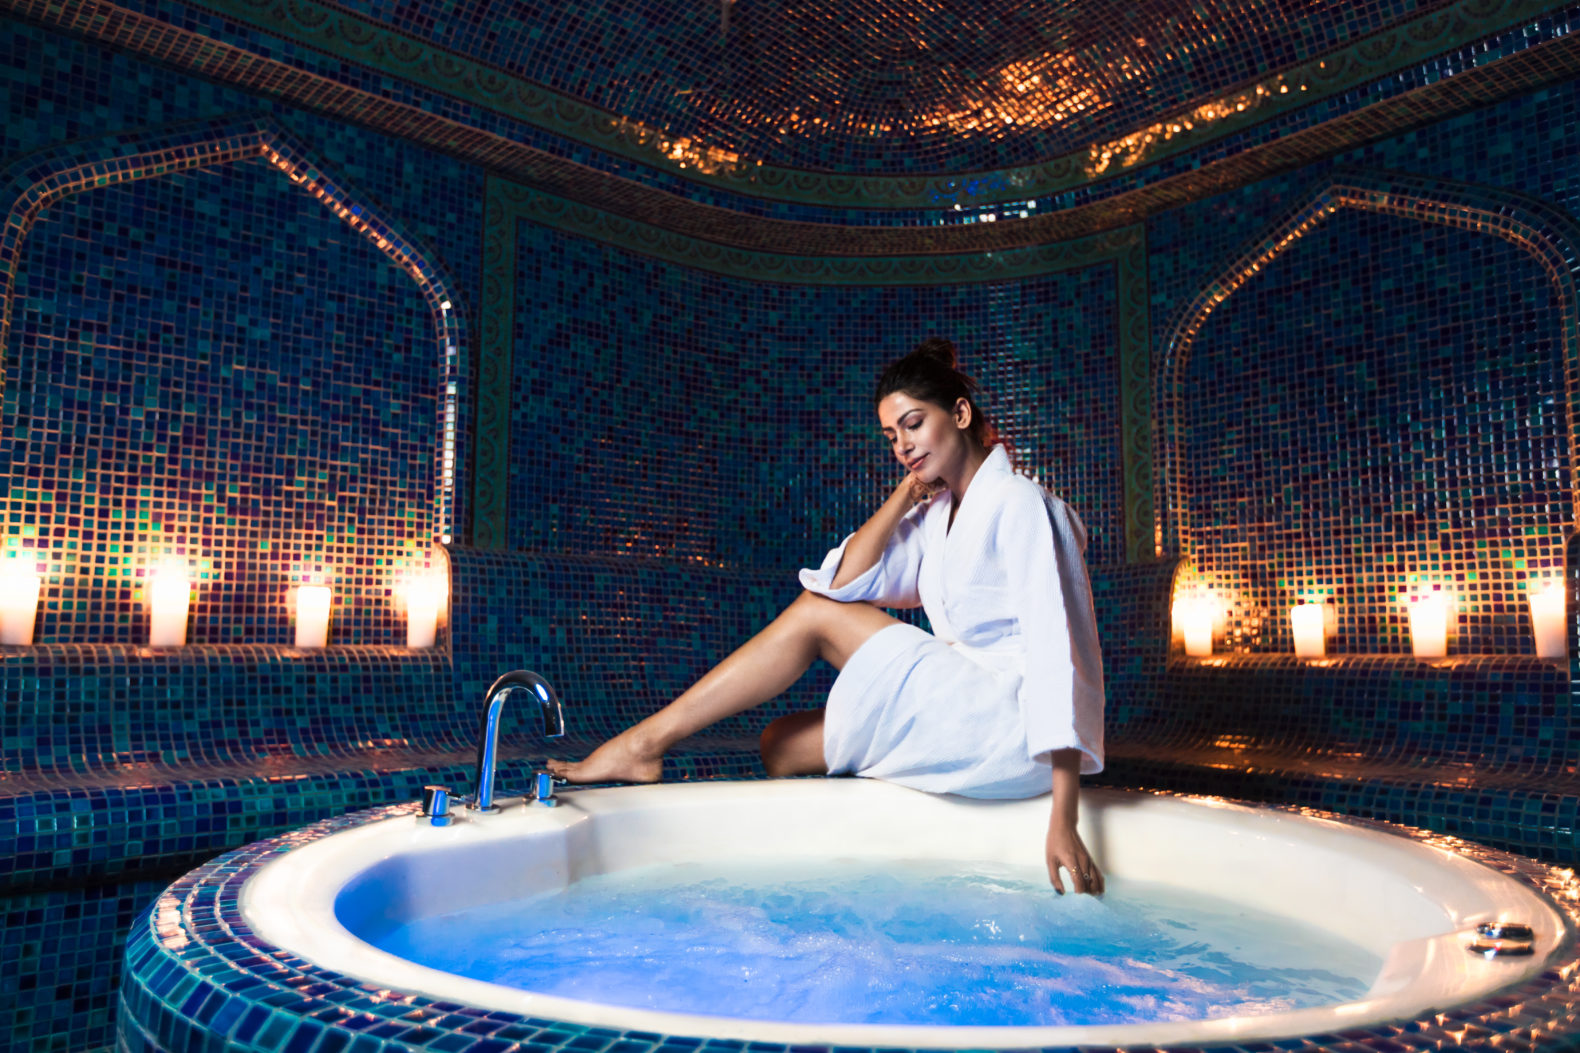 woman-hammam-hottub-candlelight-cleansing-relax-naad-wellness-india